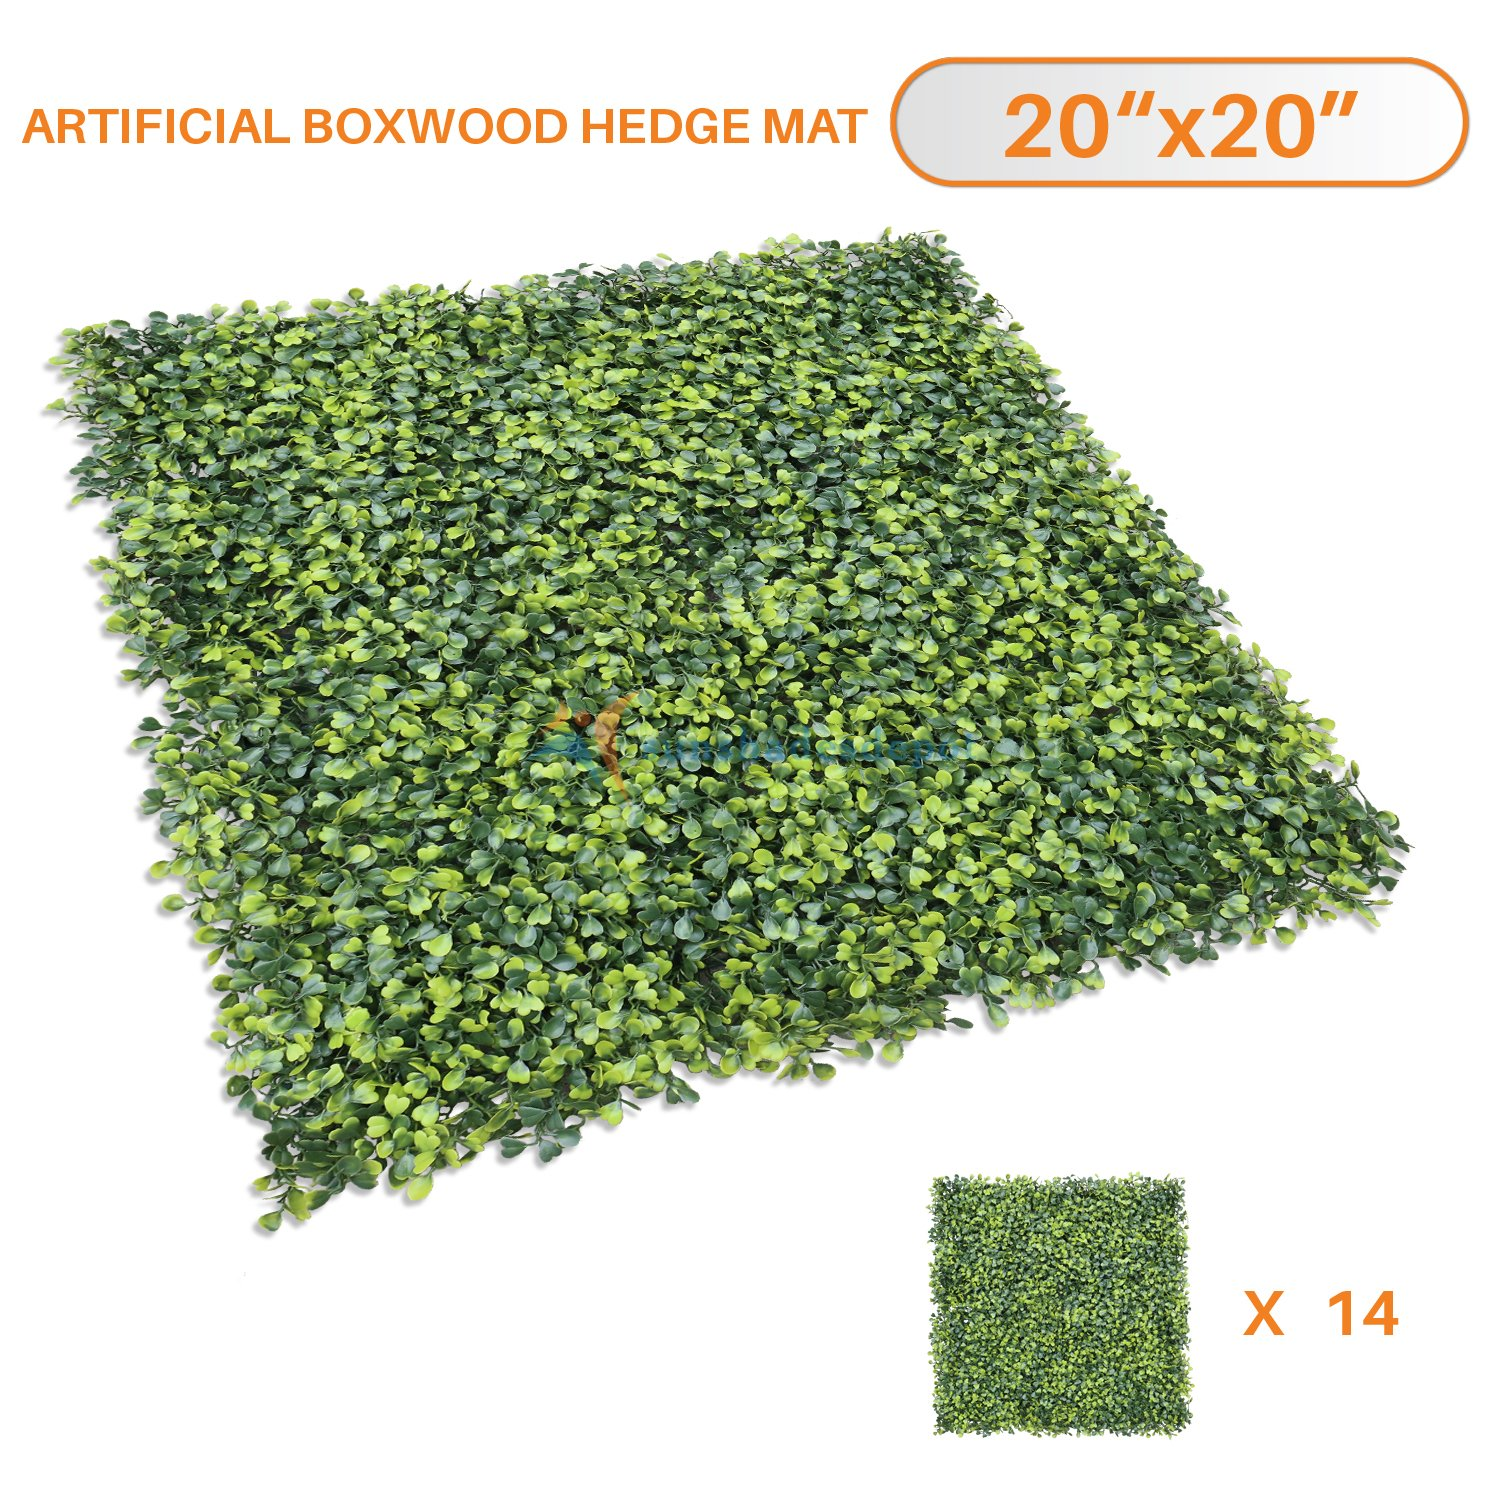 Sunshades Depot Sunshades Depot Artificial Boxwood Milan Leaf Grass Fence Privacy Screen Evergreen Hedge Panels Fake Plant Wall 20''X20'' Inch (14pcs)